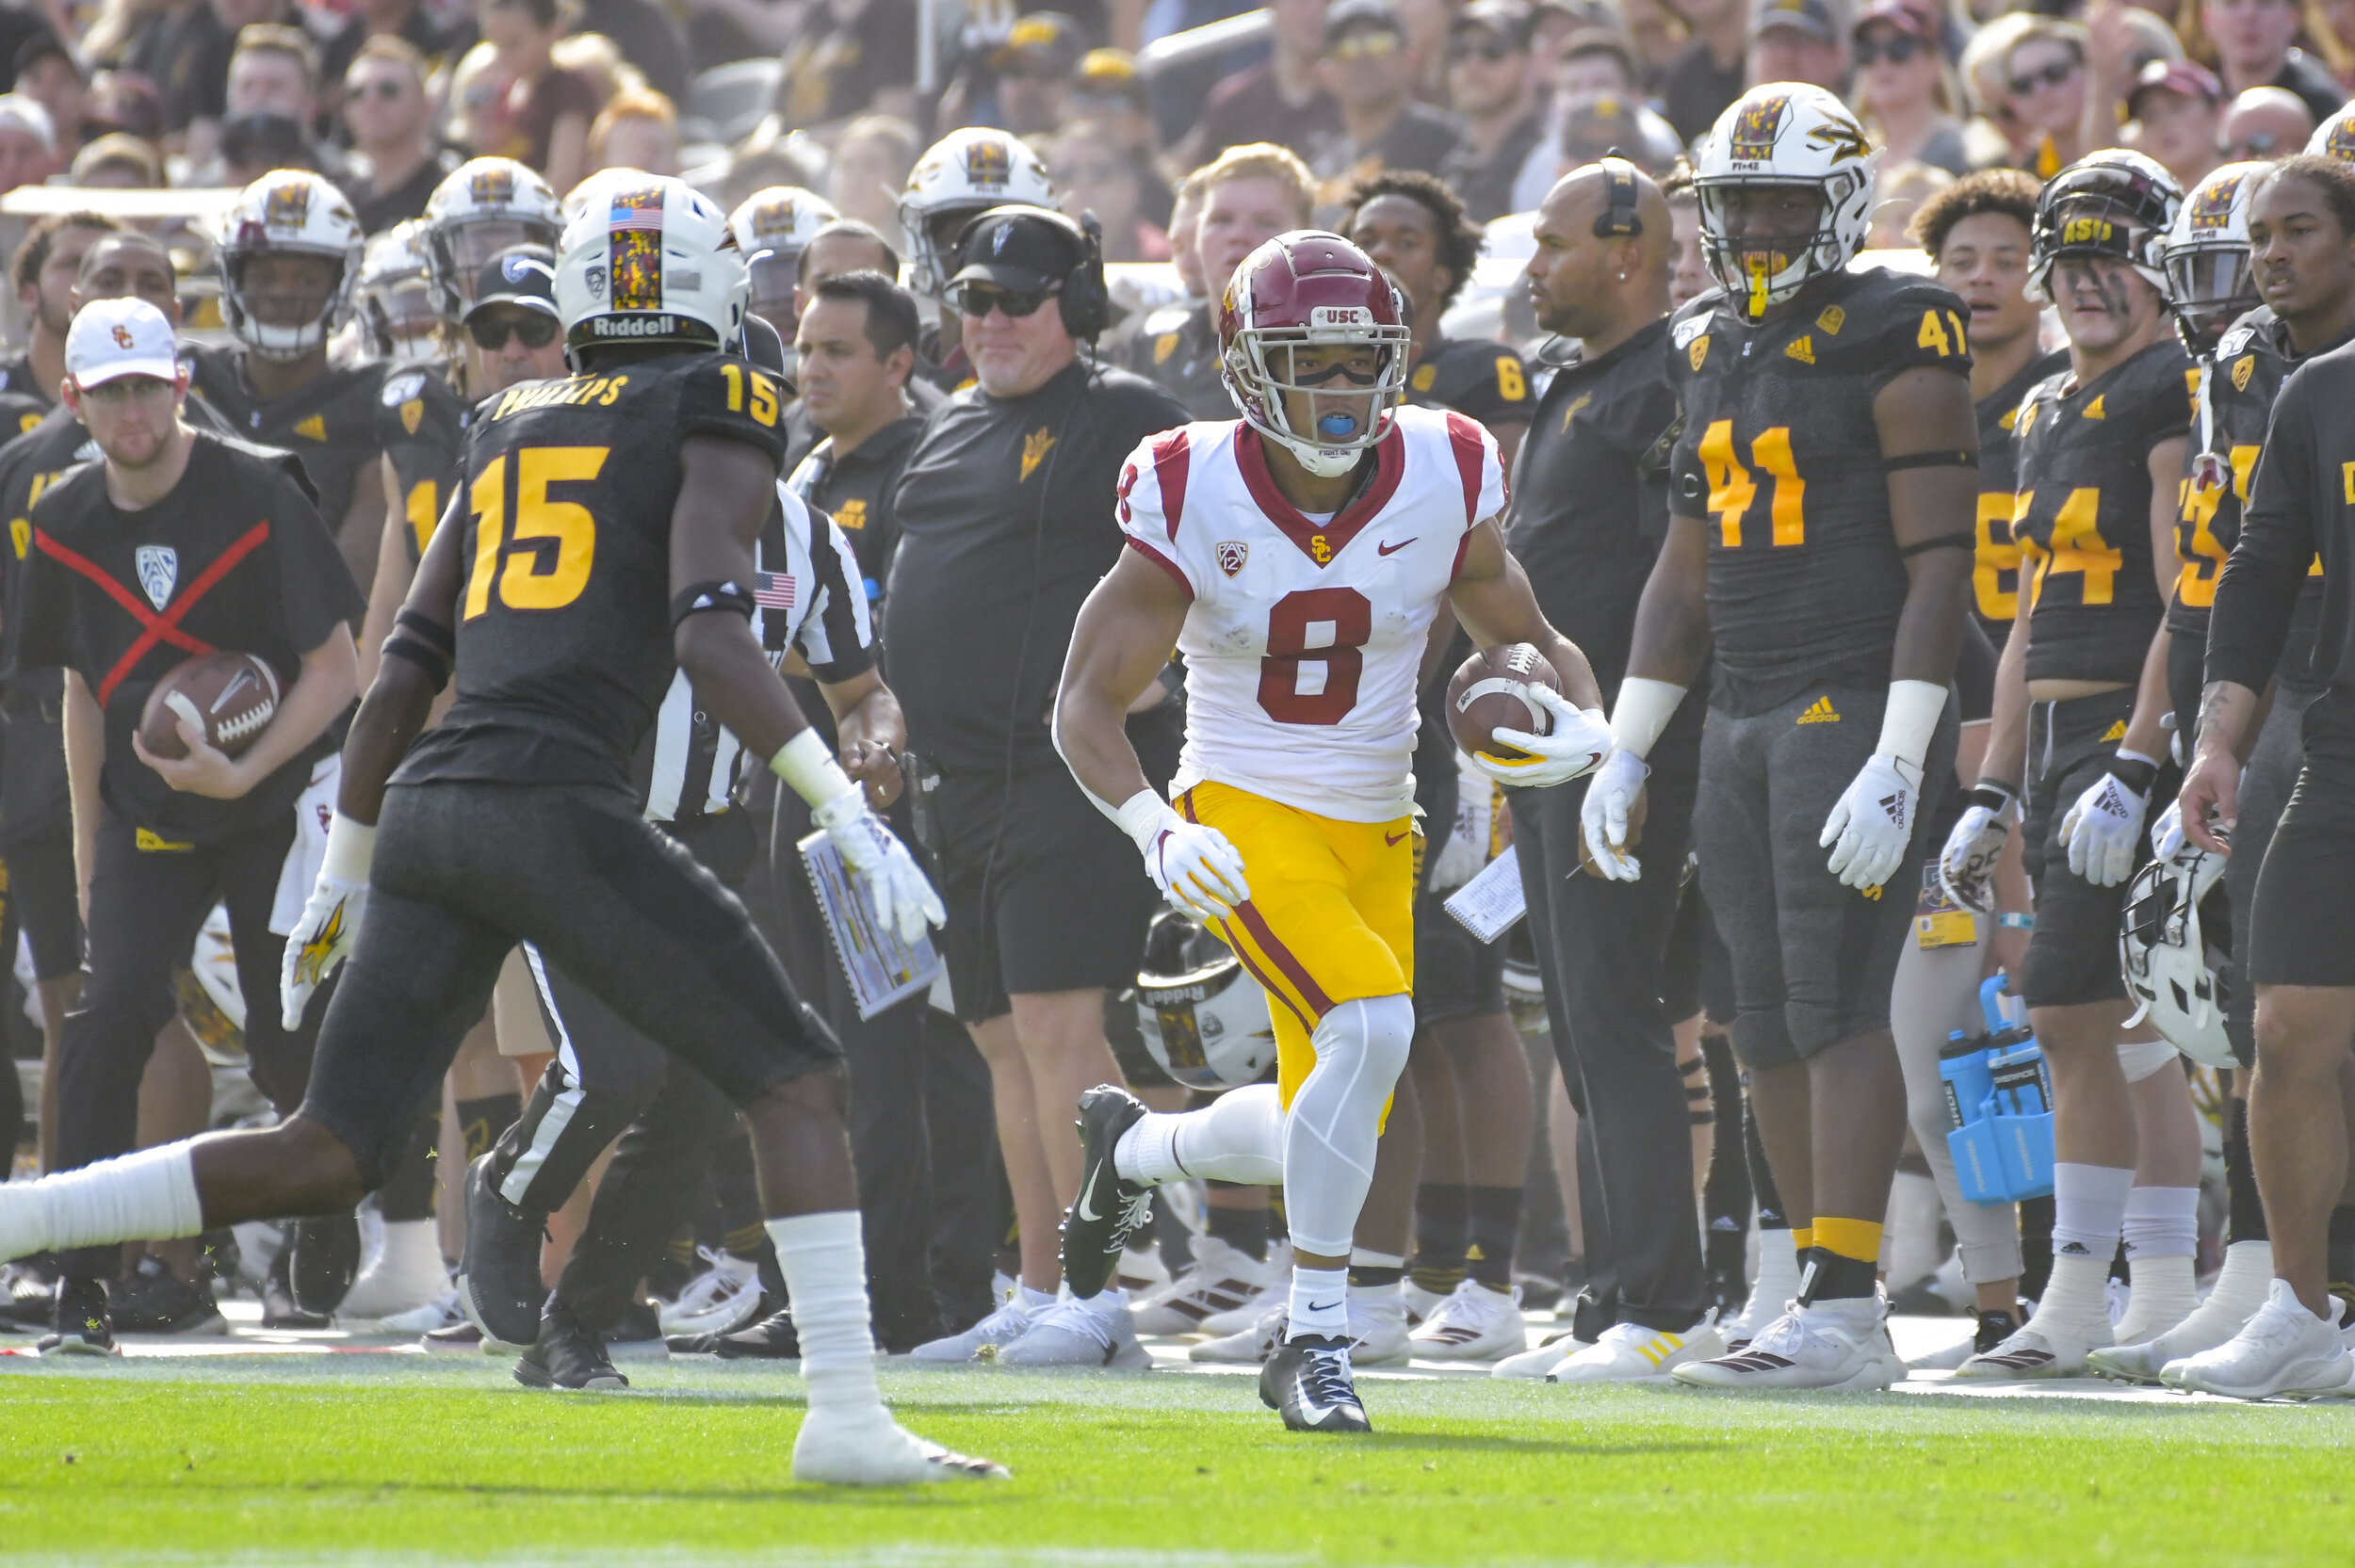 Trojan WR Amon Ra St. Brown (8) on his way for some of his 173 receiving yards. (Photo Credit: USC Athletics/John McGillen)